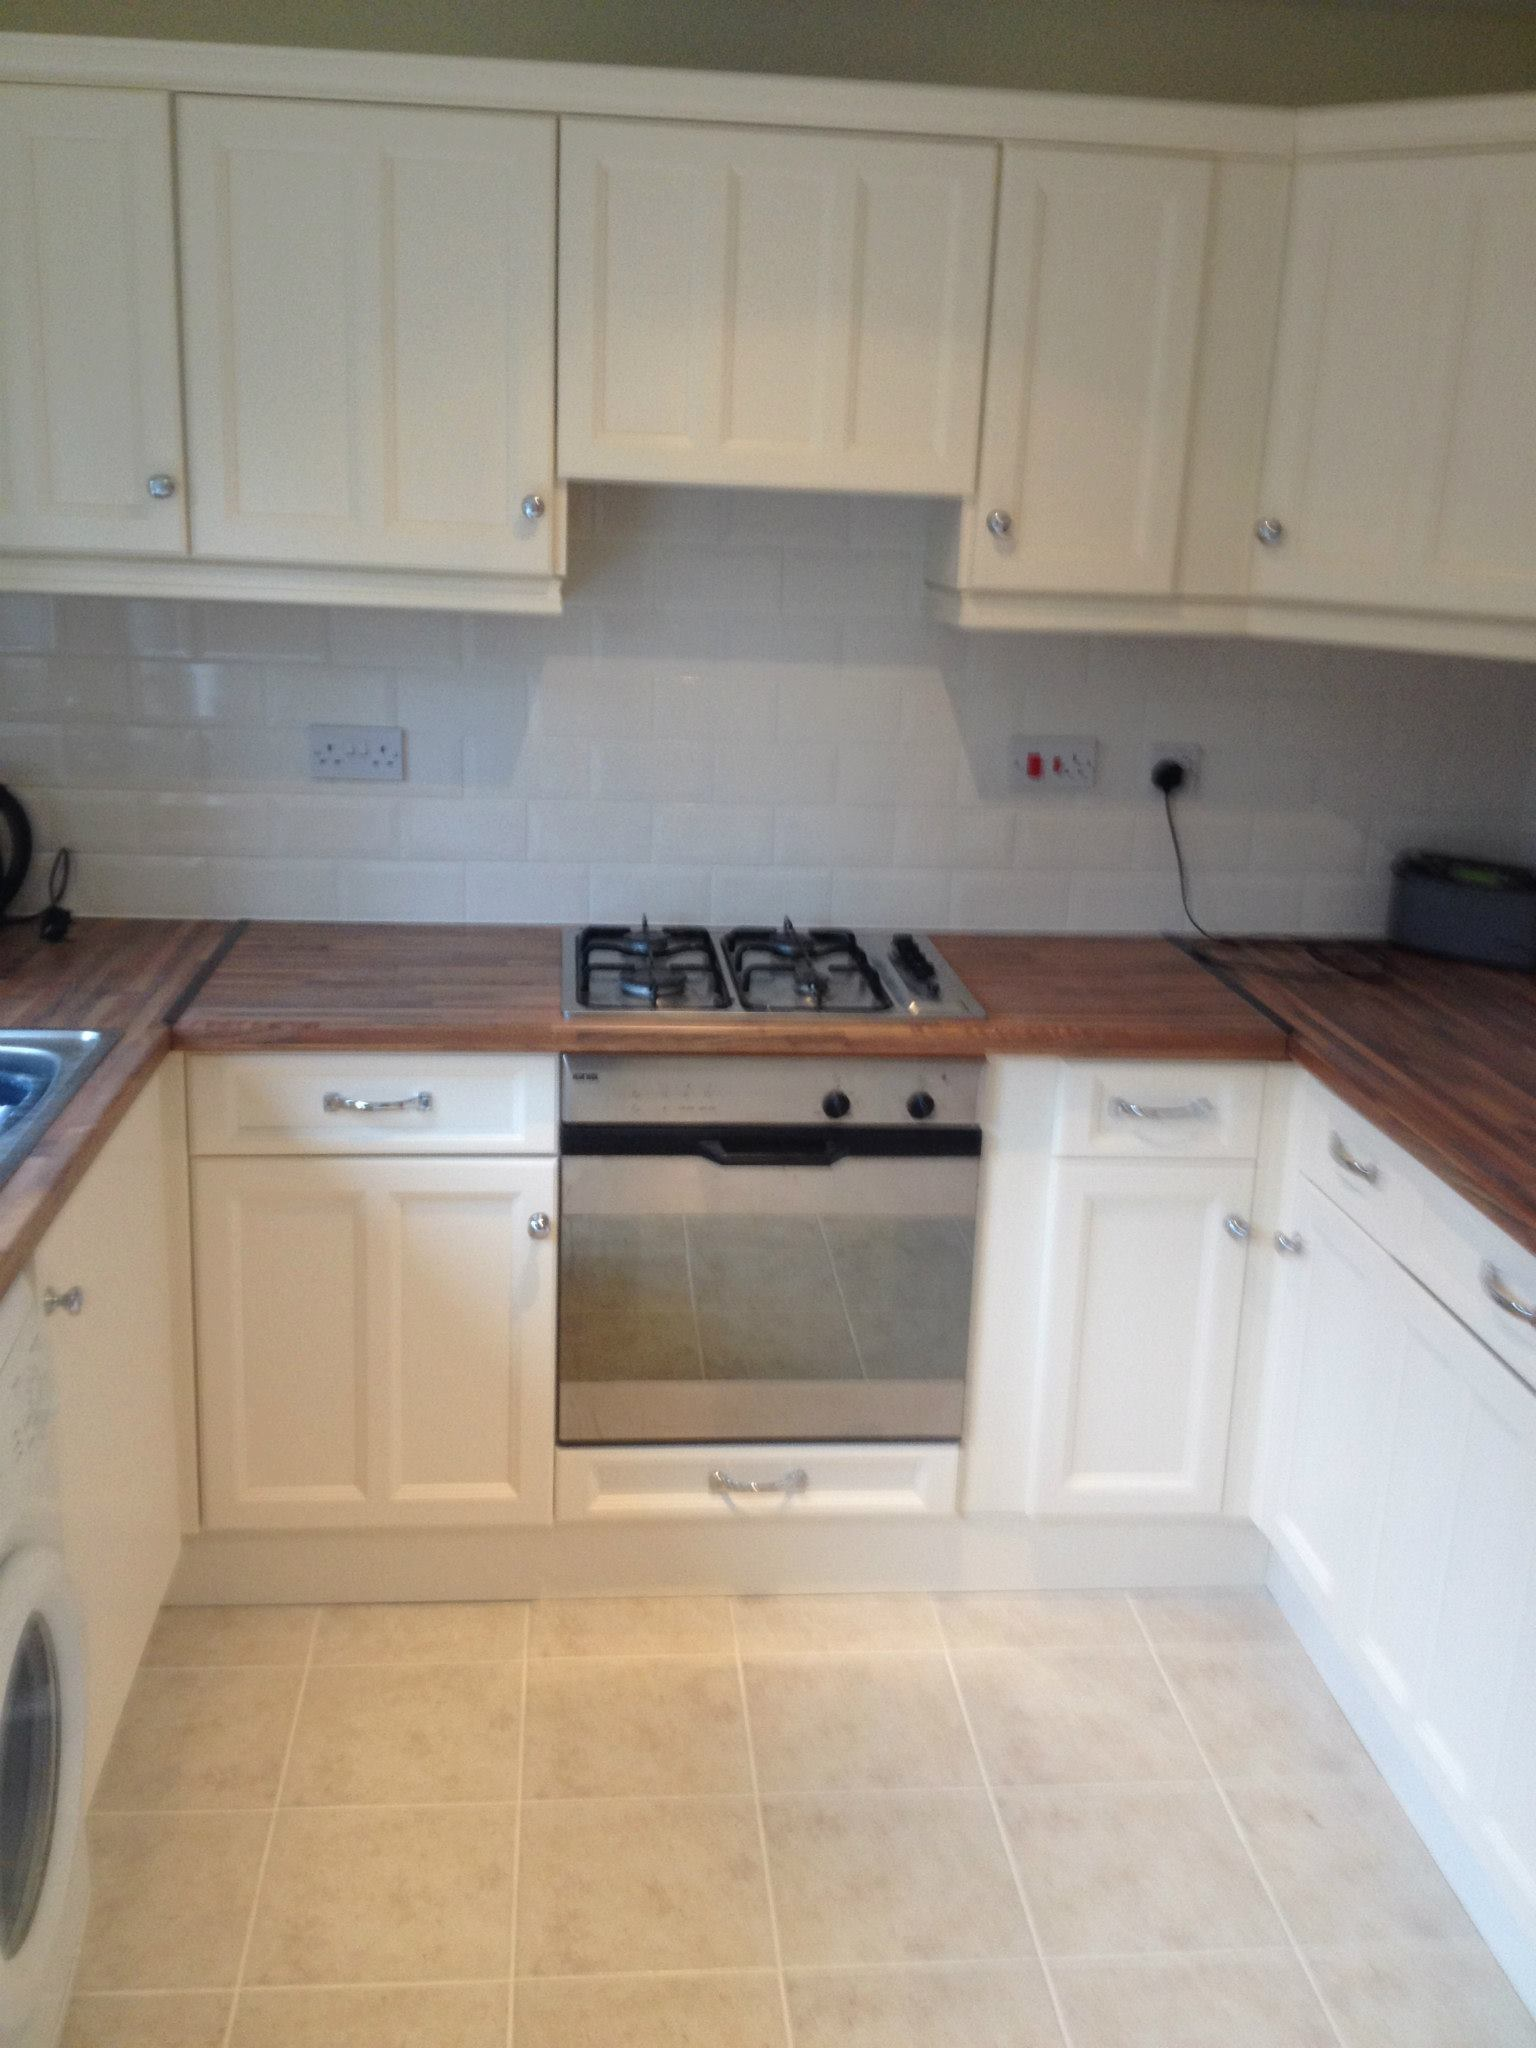 Kitchen Cupboard Painters Leicestershire Replacement Kitchen Cupboard Doors Tyne And Wear Spray Painting